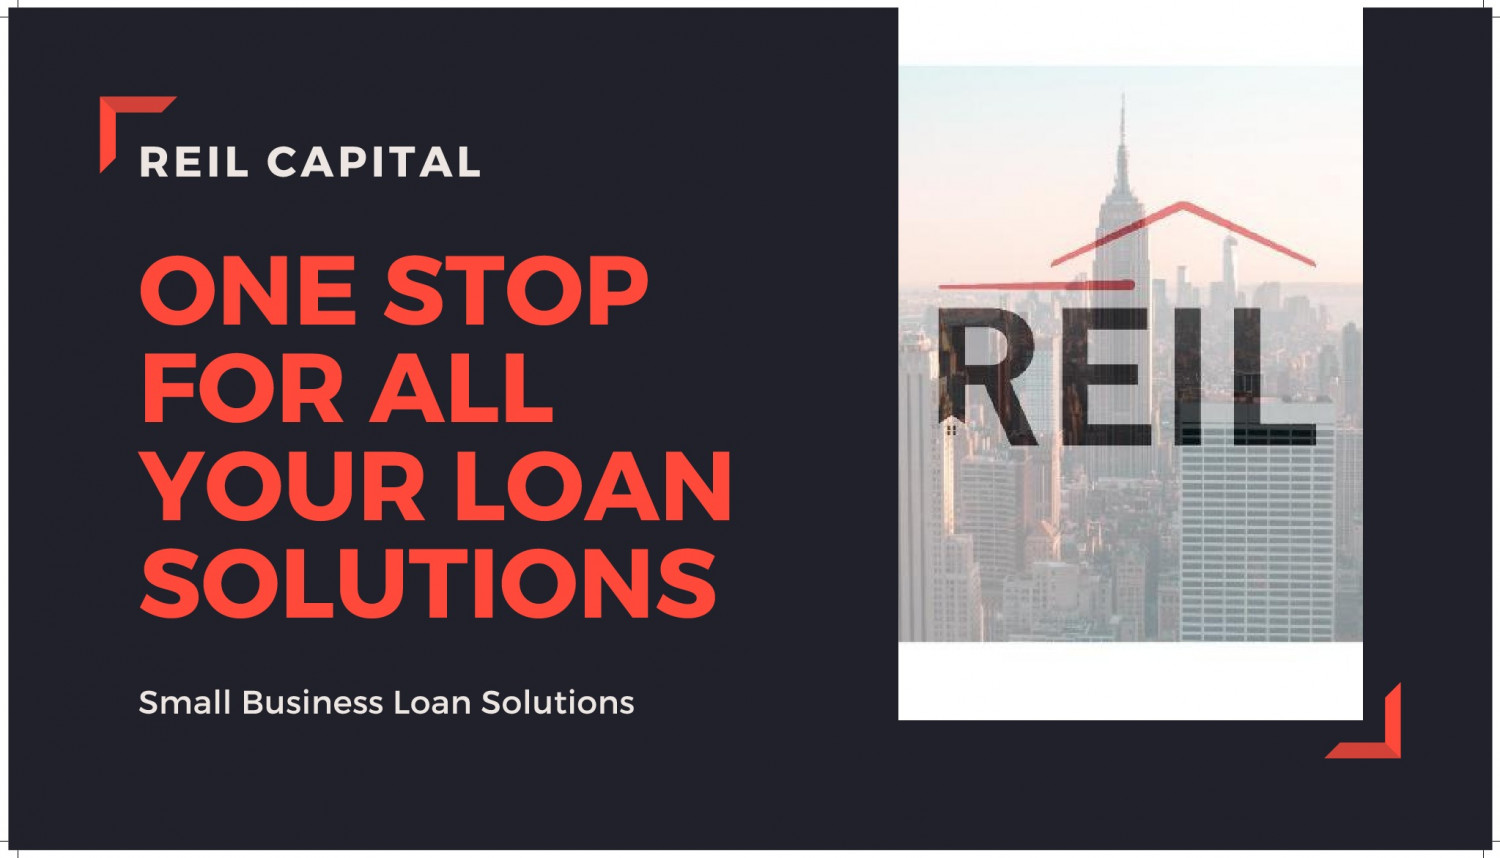 REIL Capital Small Business Loan Solutions Company Infographic